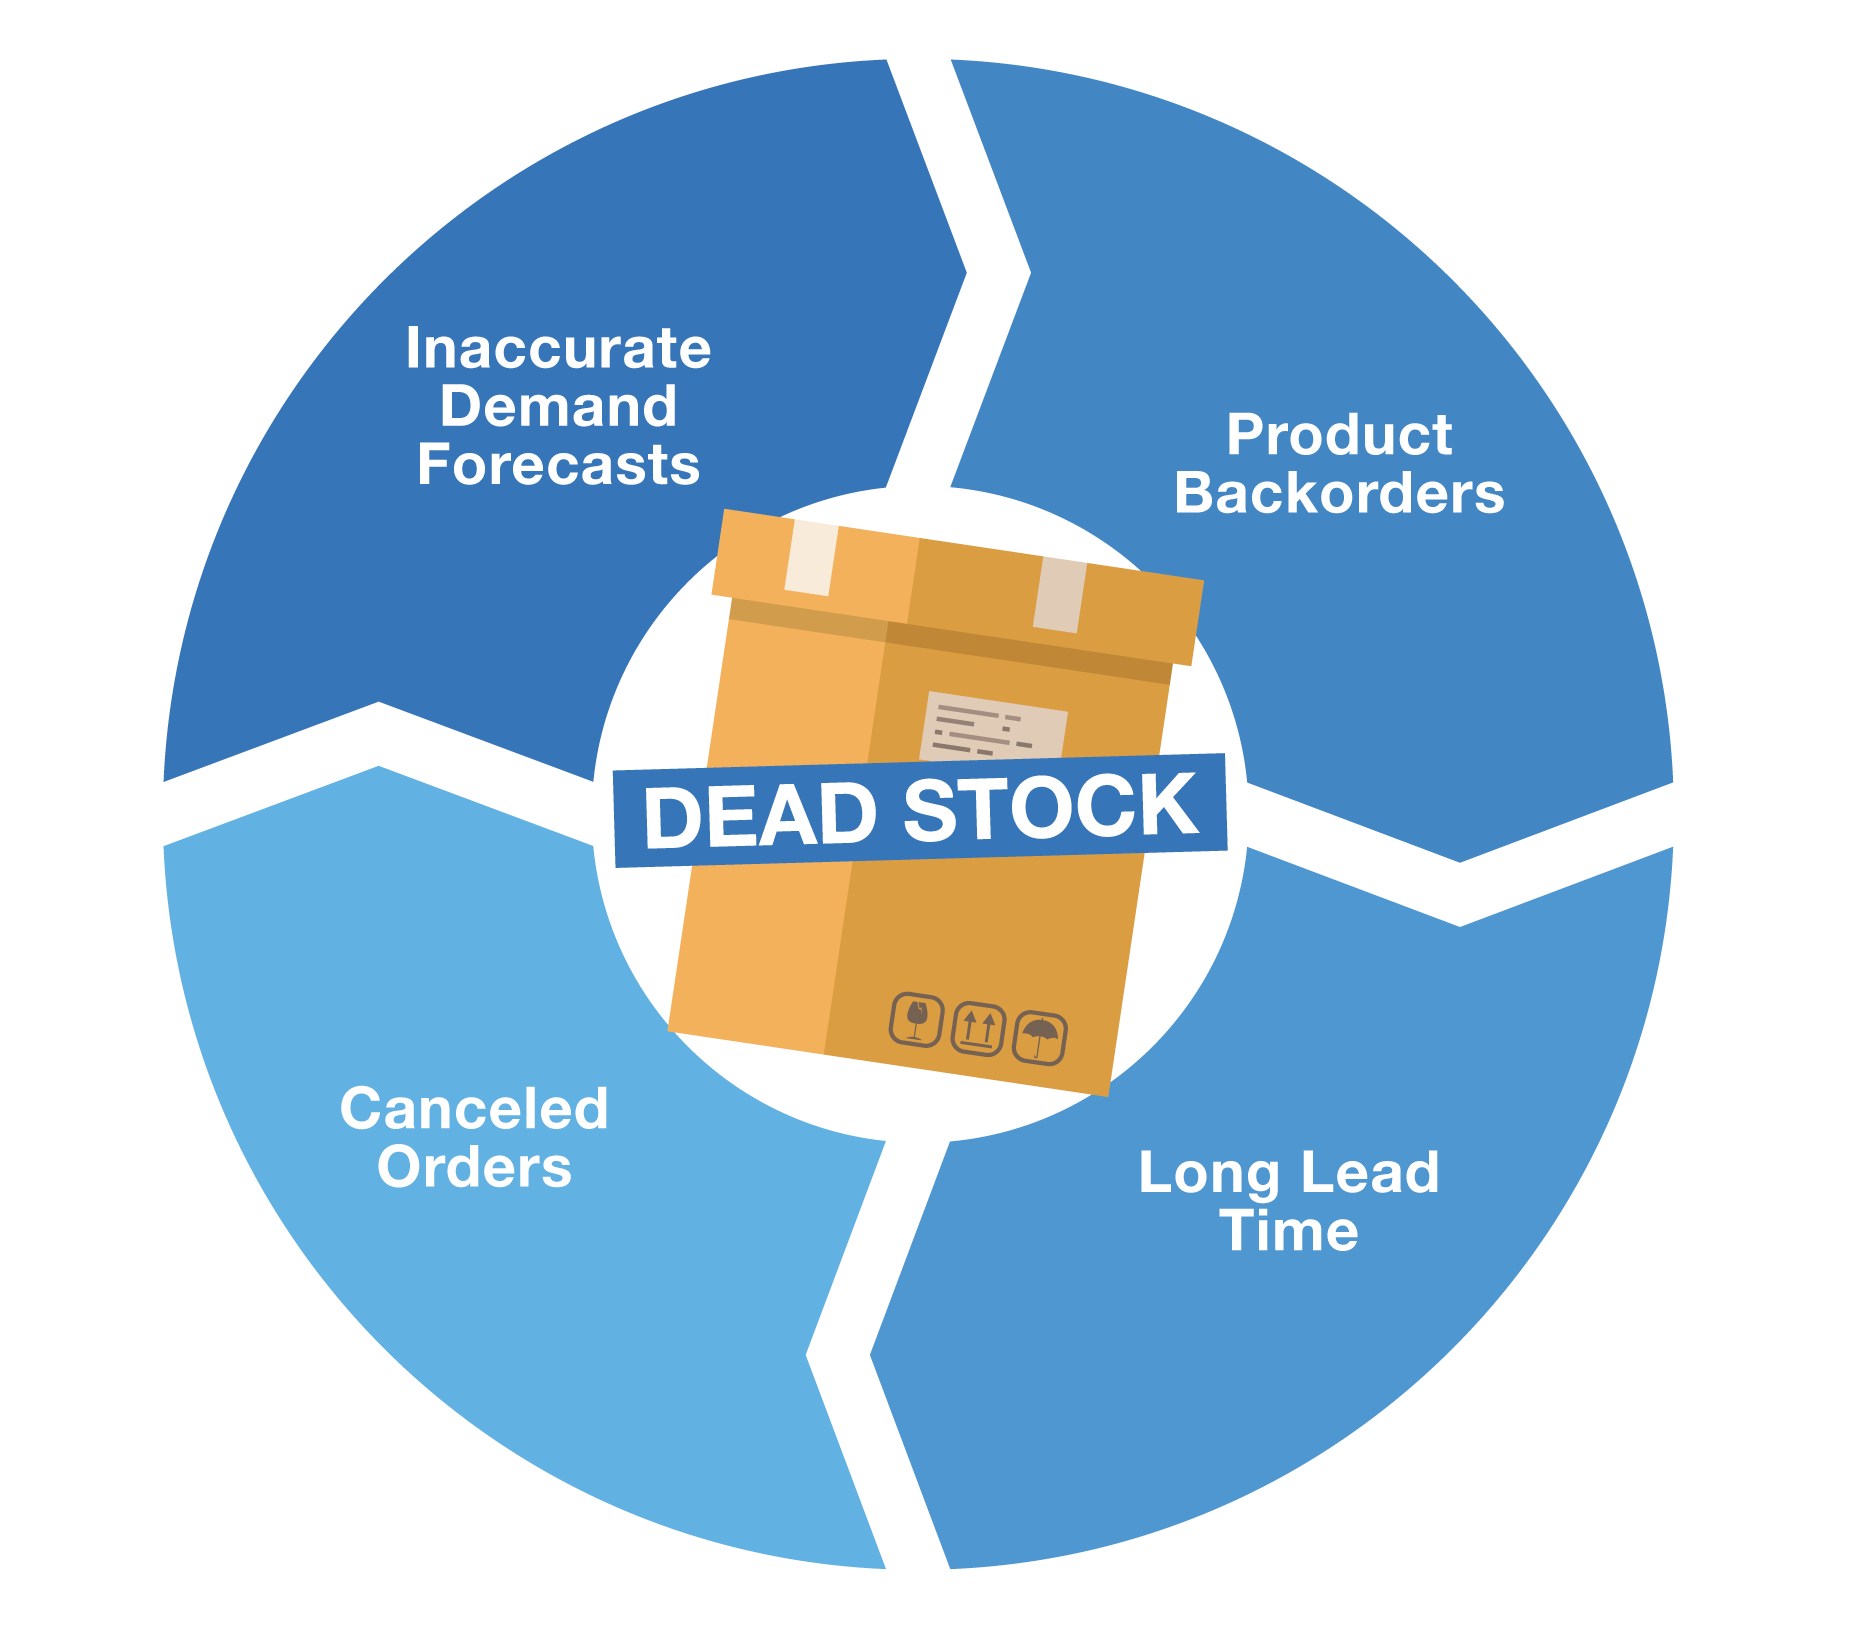 Causes of Dead Stock